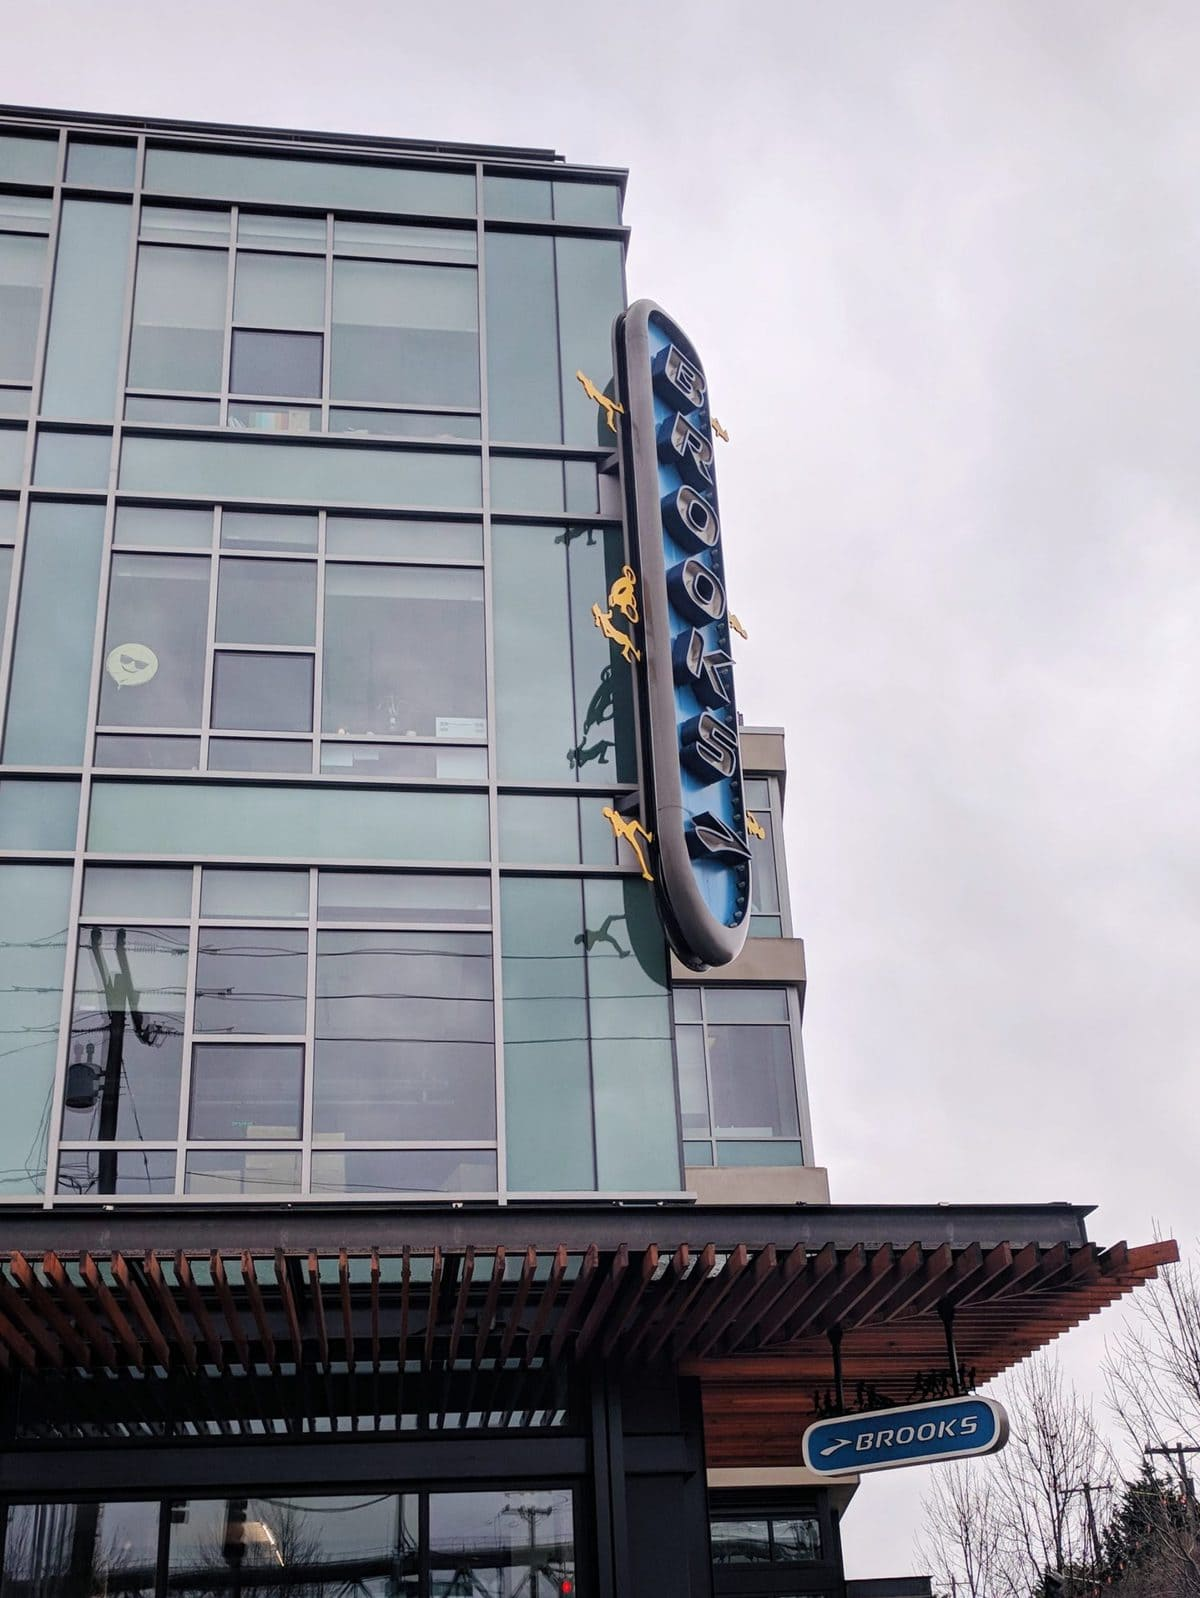 Brooks HQ and flagship store in Seattle, WA